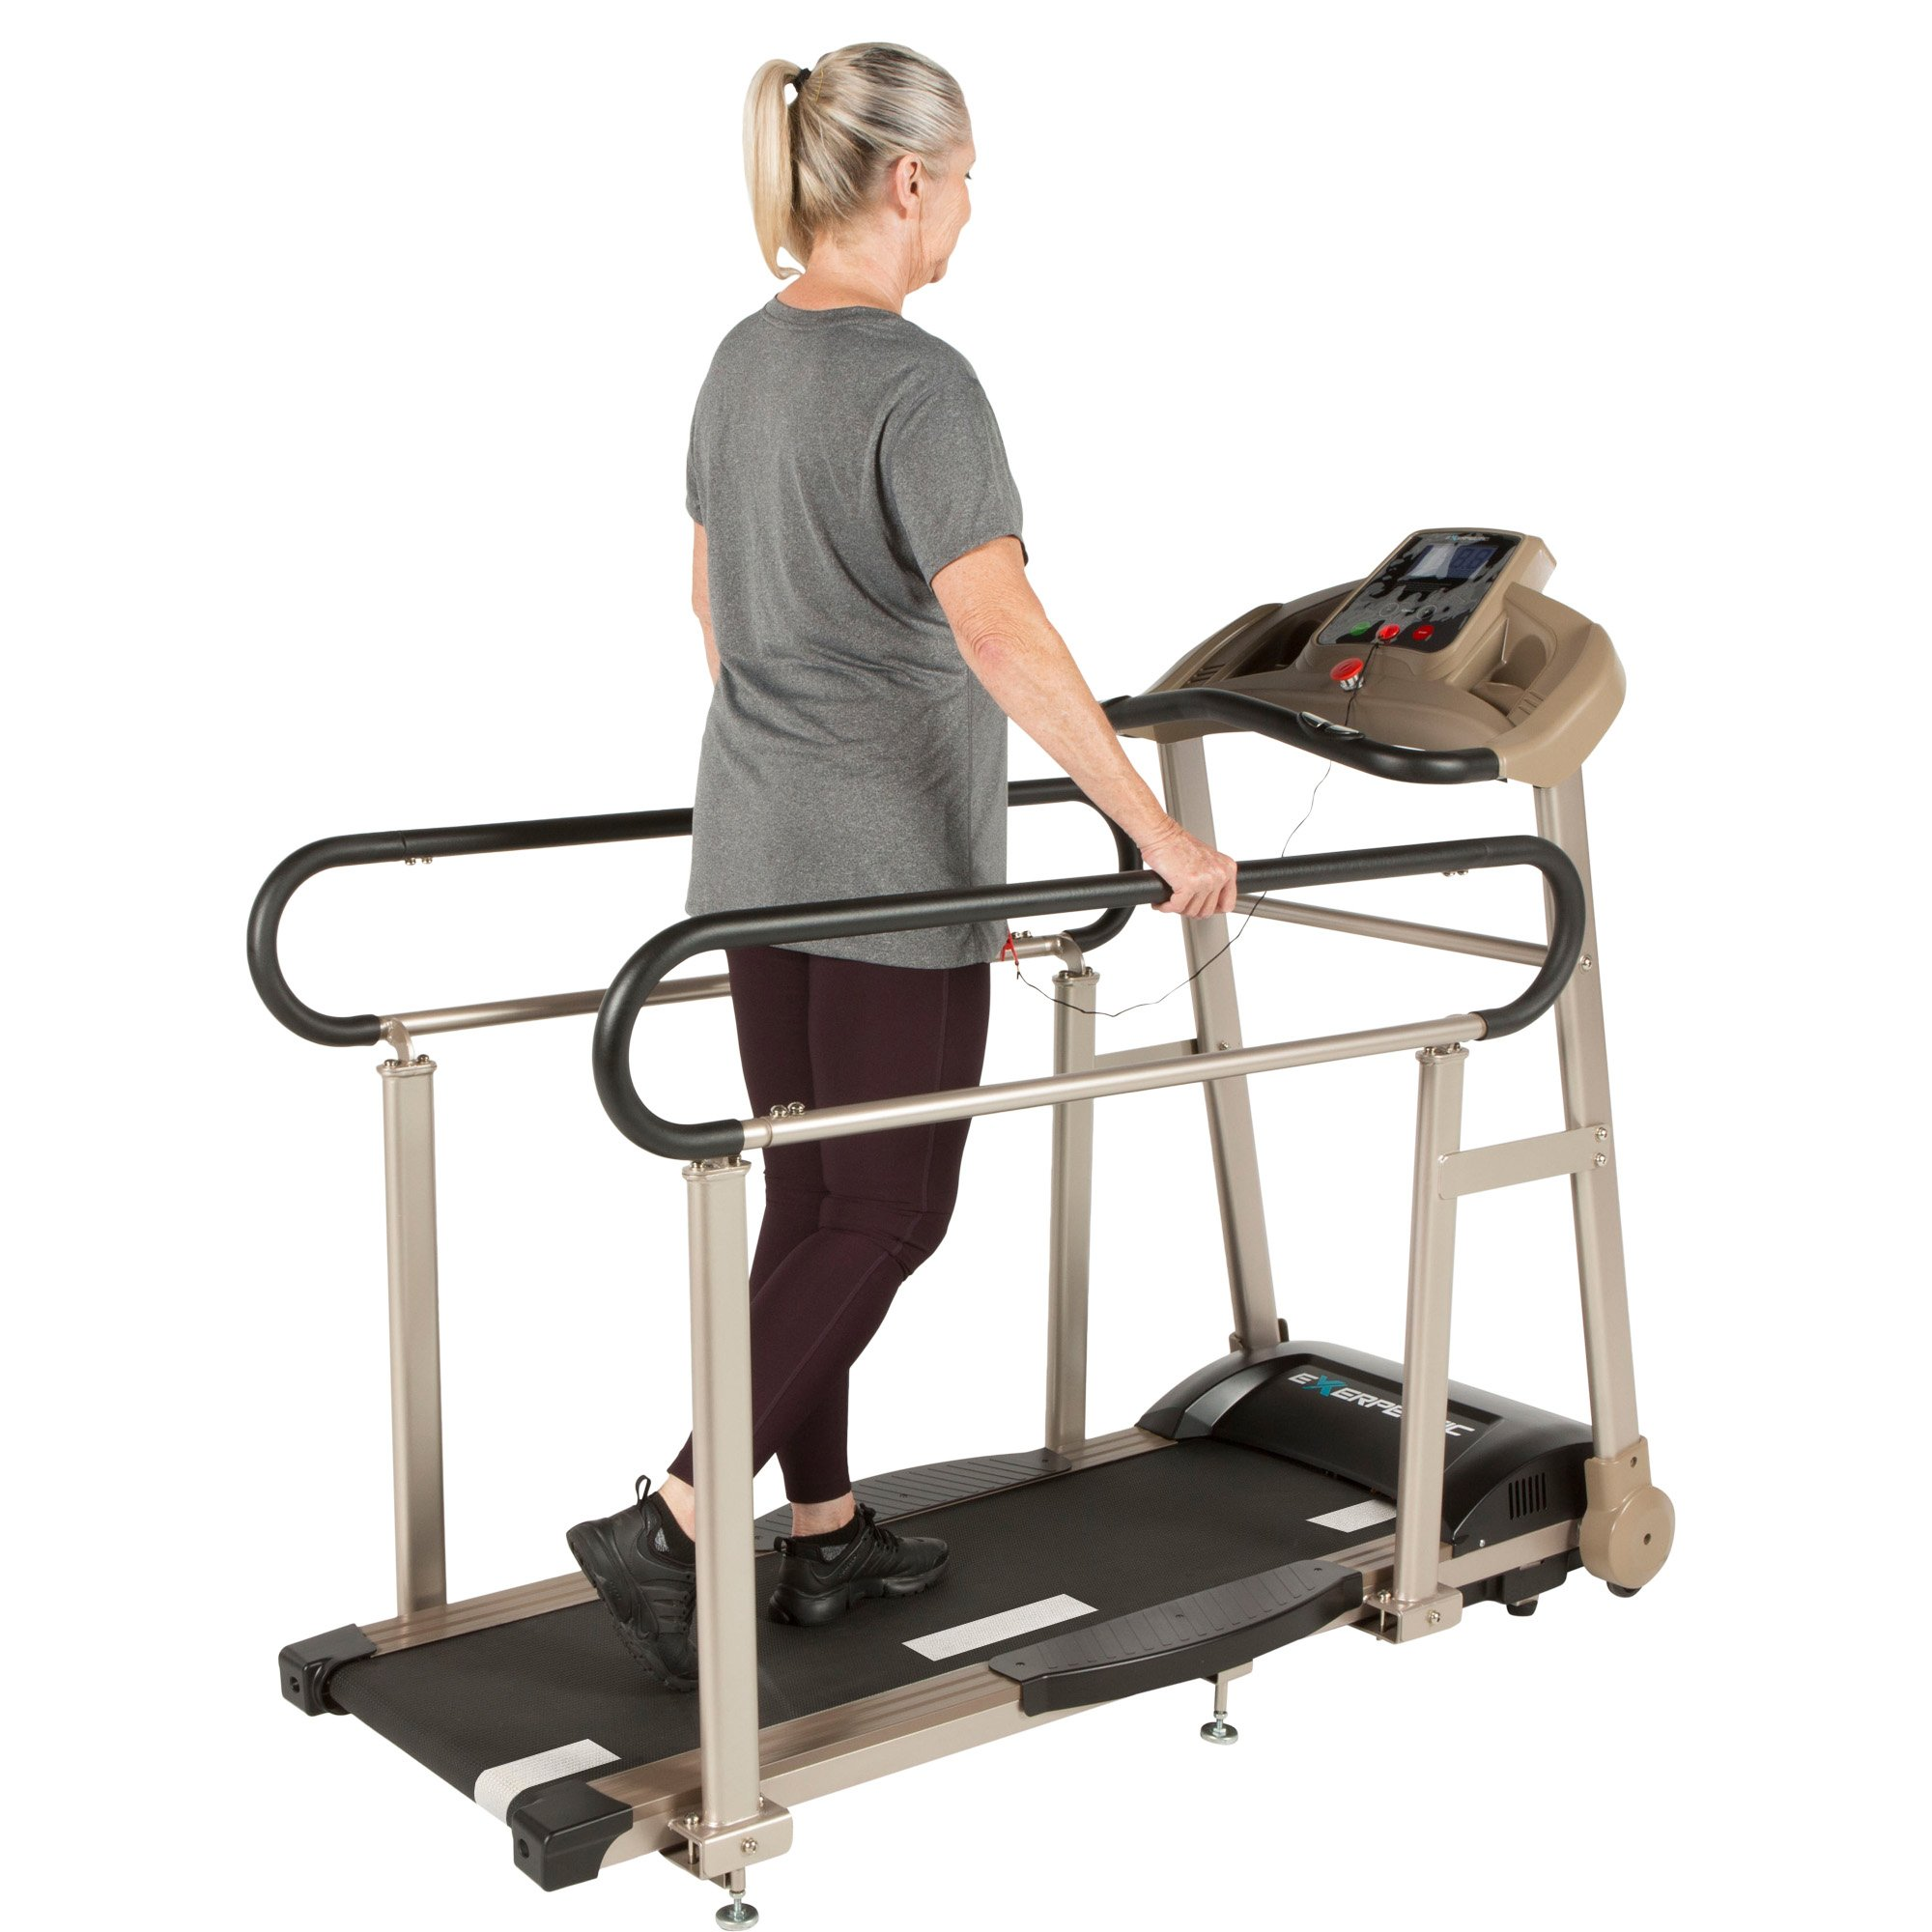 EXERPEUTIC TF2000 Recovery Fitness Walking Treadmill with Full Length Hand Rails, Deck Cushions and Heart Rate Monitoring by Exerpeutic (Image #1)